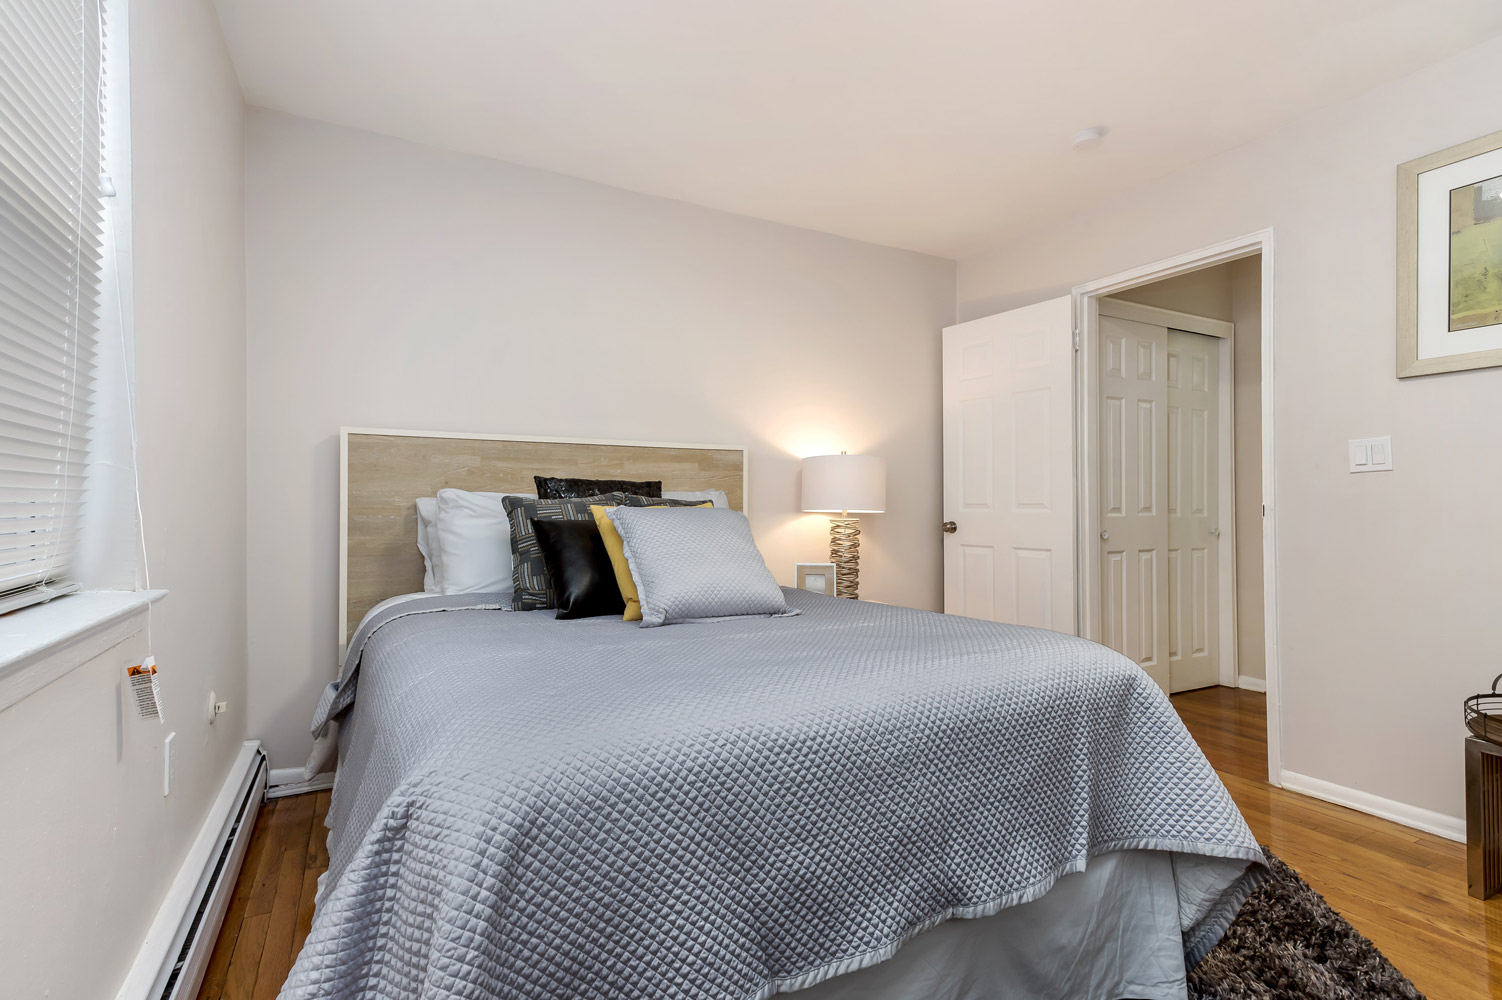 Bedroom at Grandview Gardens Apartments in Edison, New Jersey